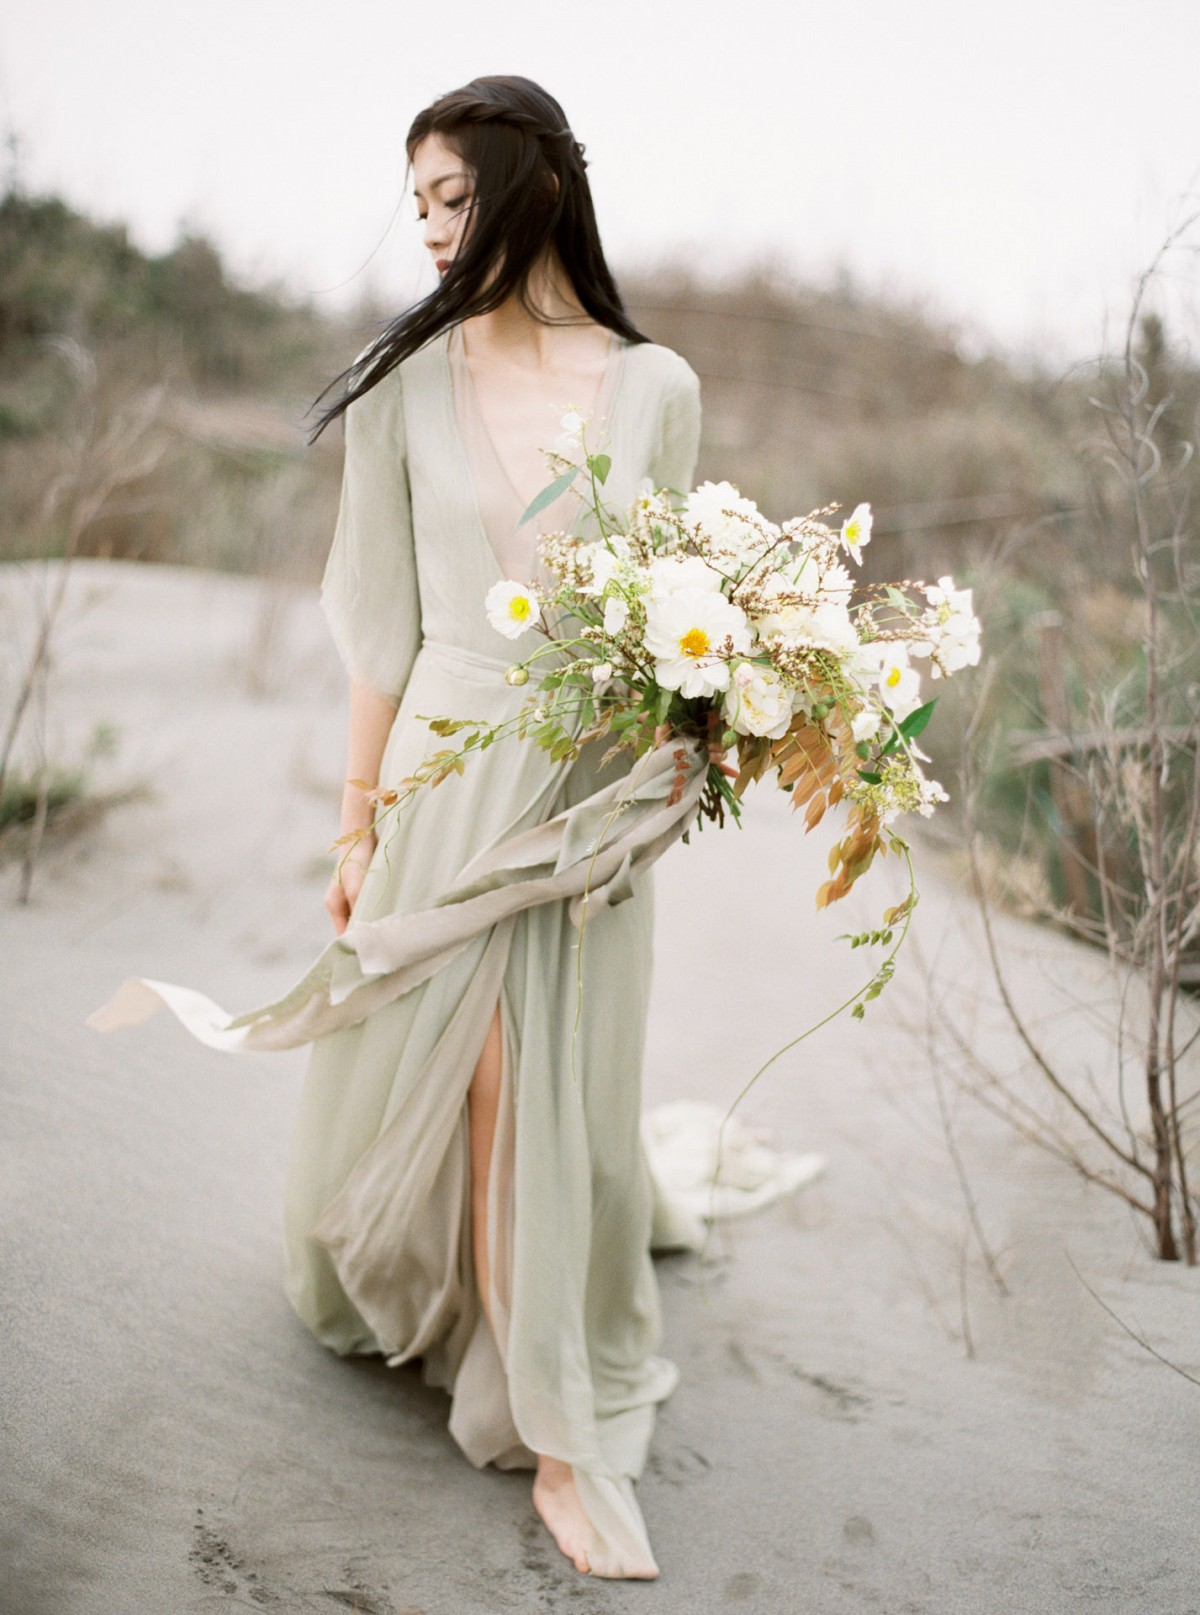 Refined Rustic Wedding Inspiration for Autumn in Taiwan